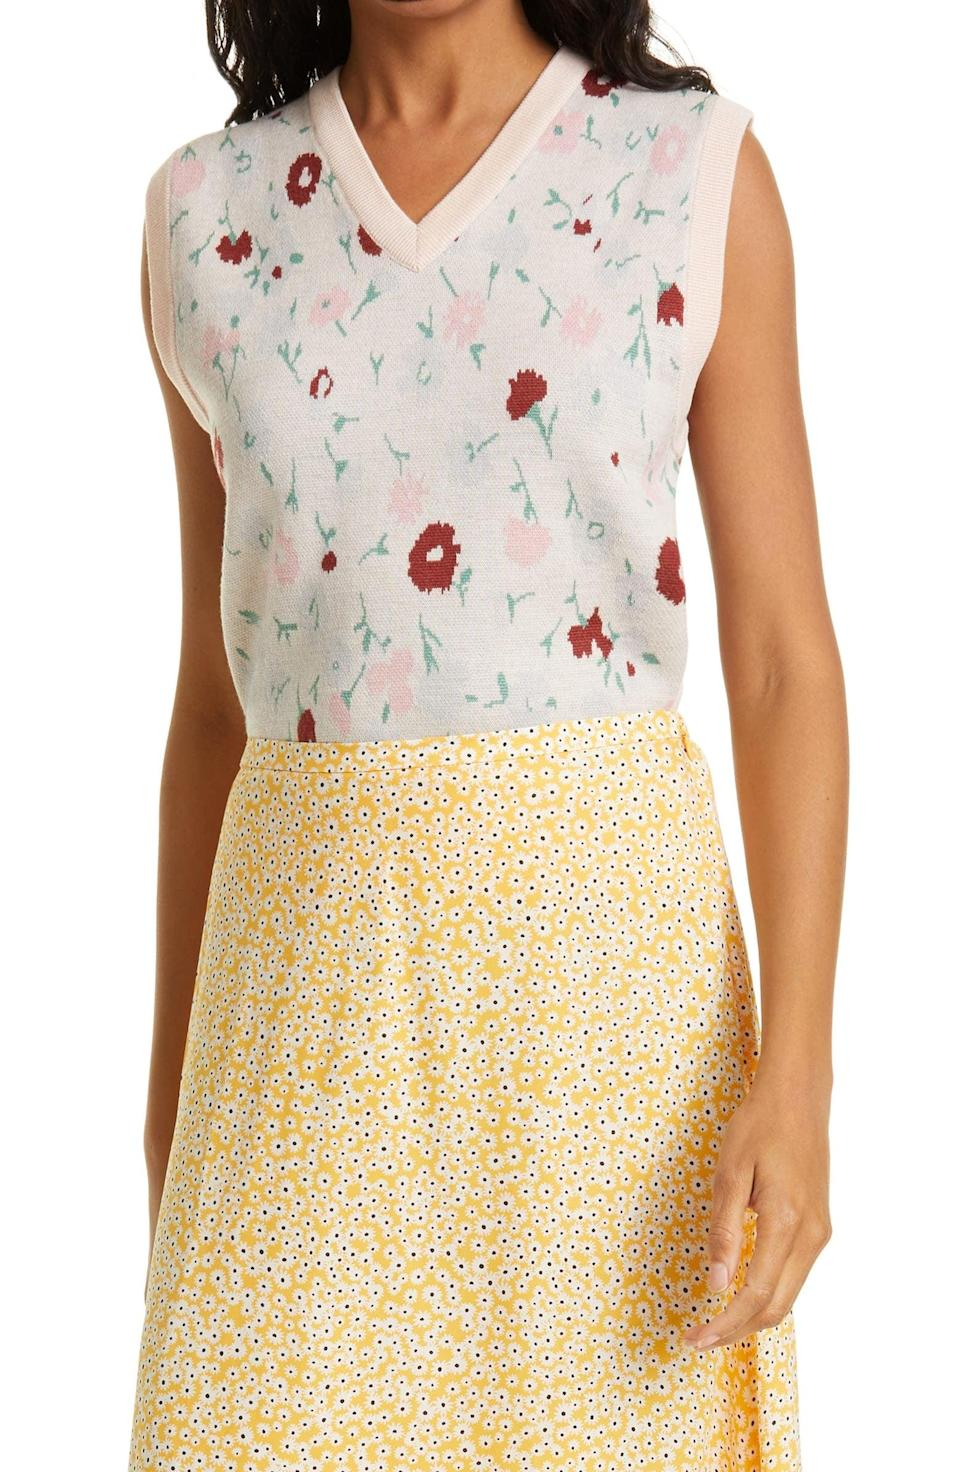 <p>If you swear by floral prints for the spring, look no further than this dainty <span>Samsoe Samsoe Ina Floral Sweater Vest</span> ($160).</p>